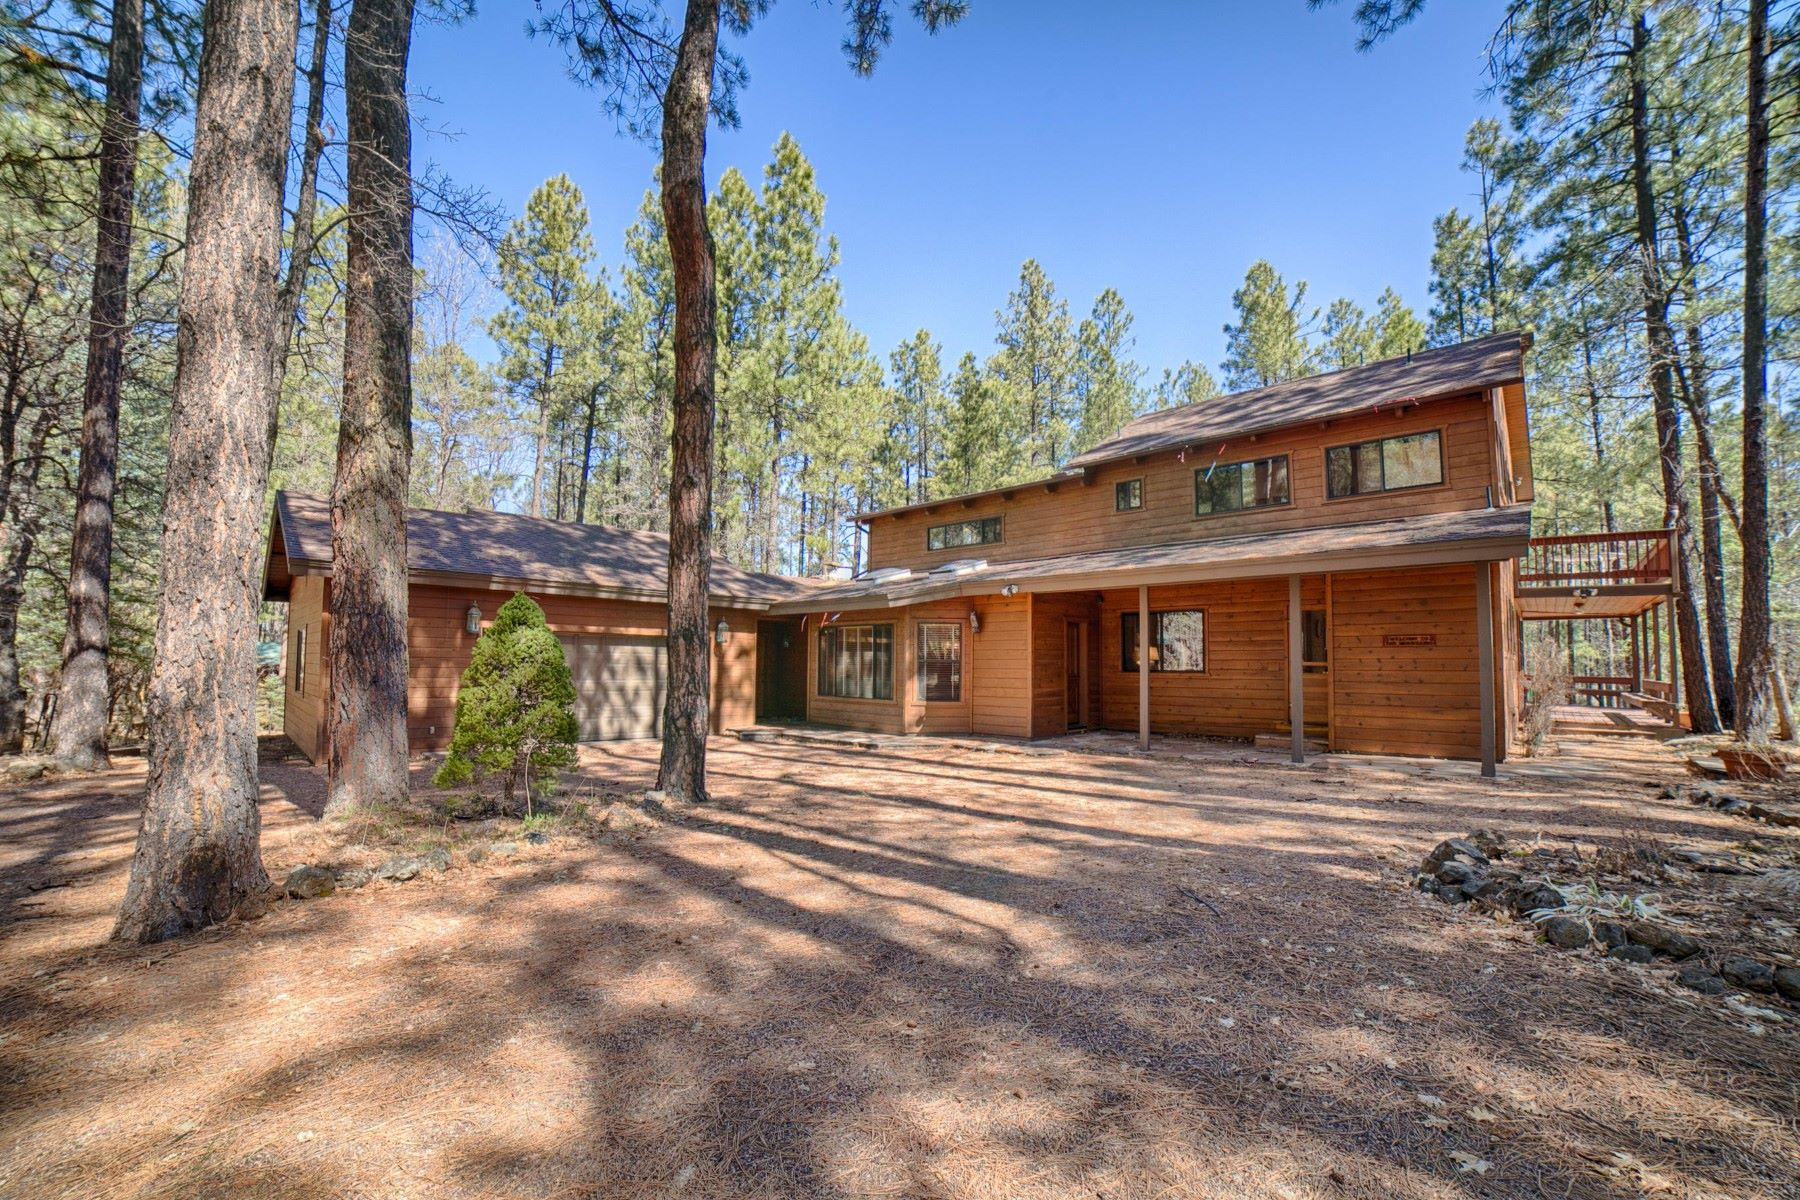 Single Family Homes for Active at White Mountain Summer Homes 2864 Aspen Loop LOOP Pinetop, Arizona 85935 United States